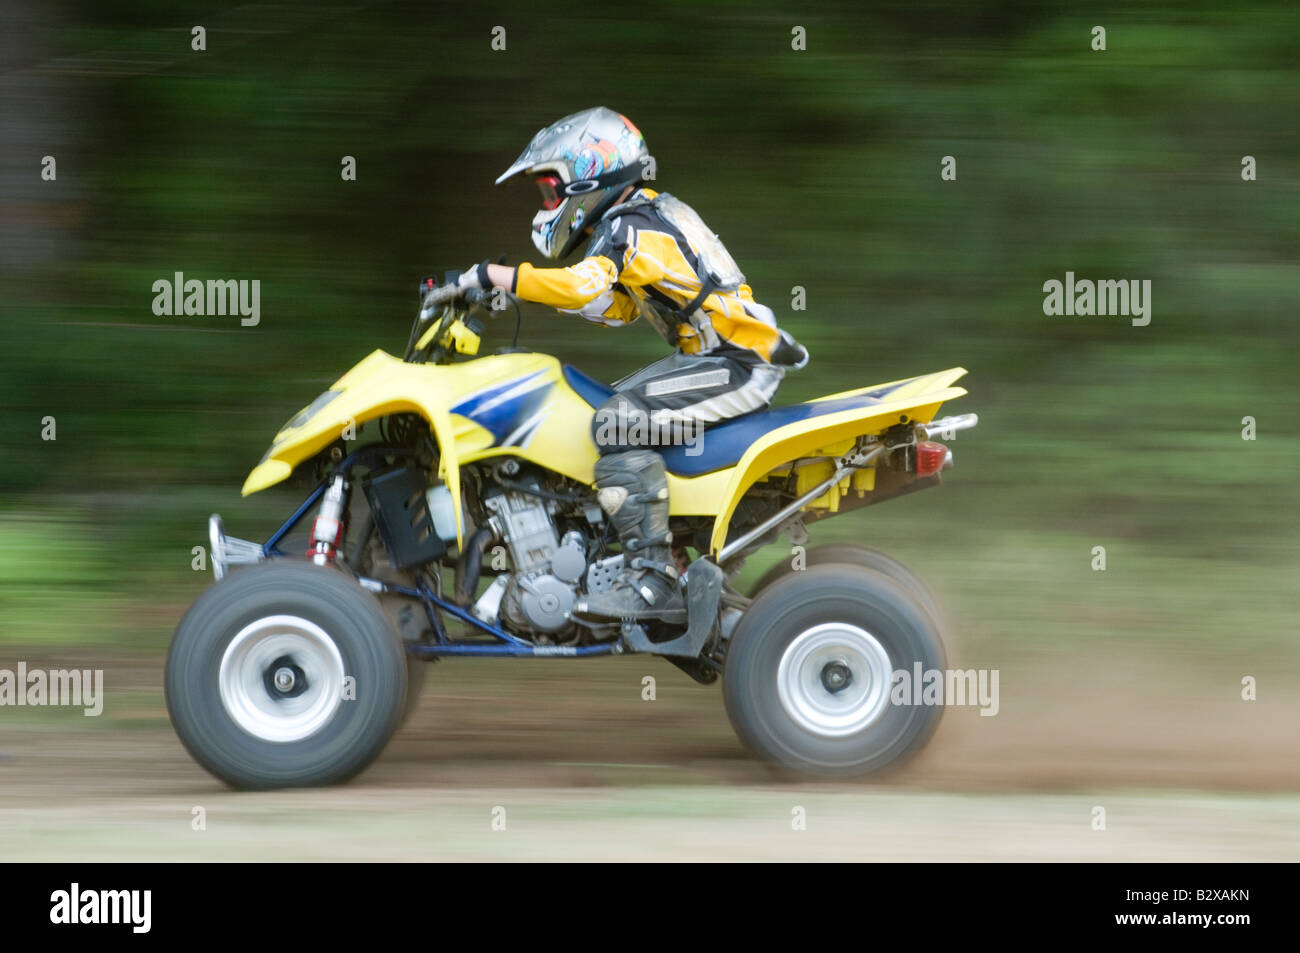 hight resolution of young boy riding an atv four wheeler vehicle